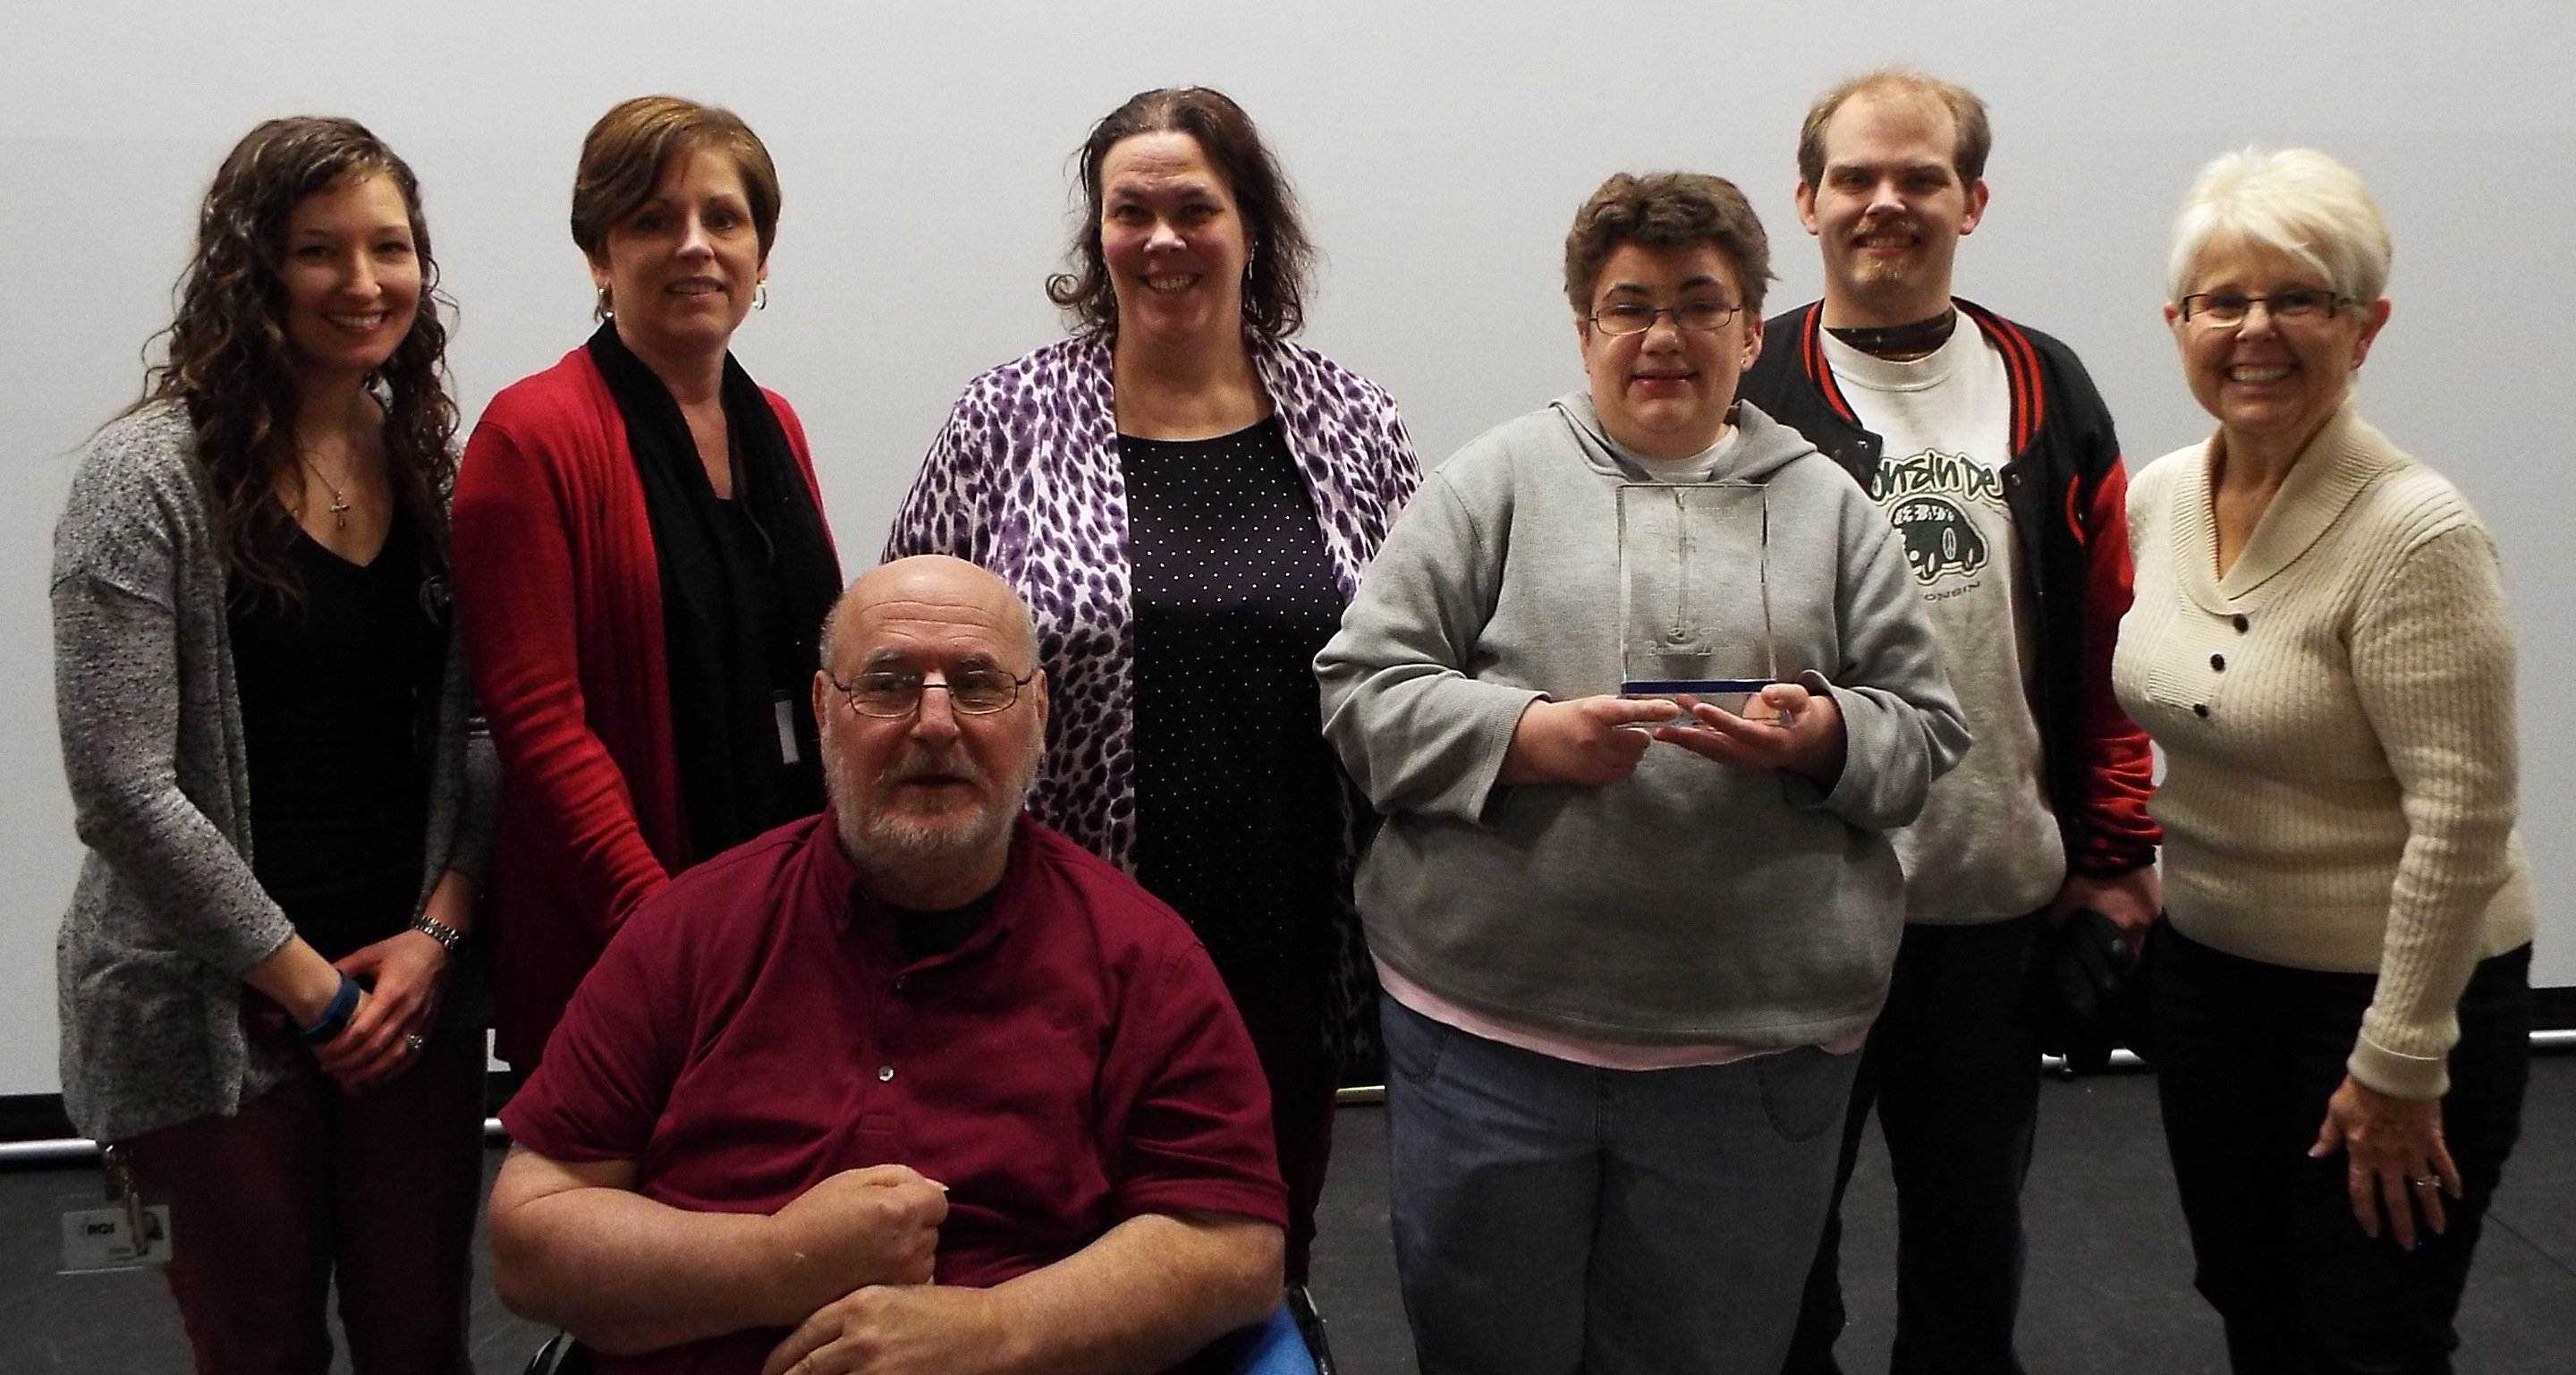 RCS Empoweres receives Making Spirits Bright award